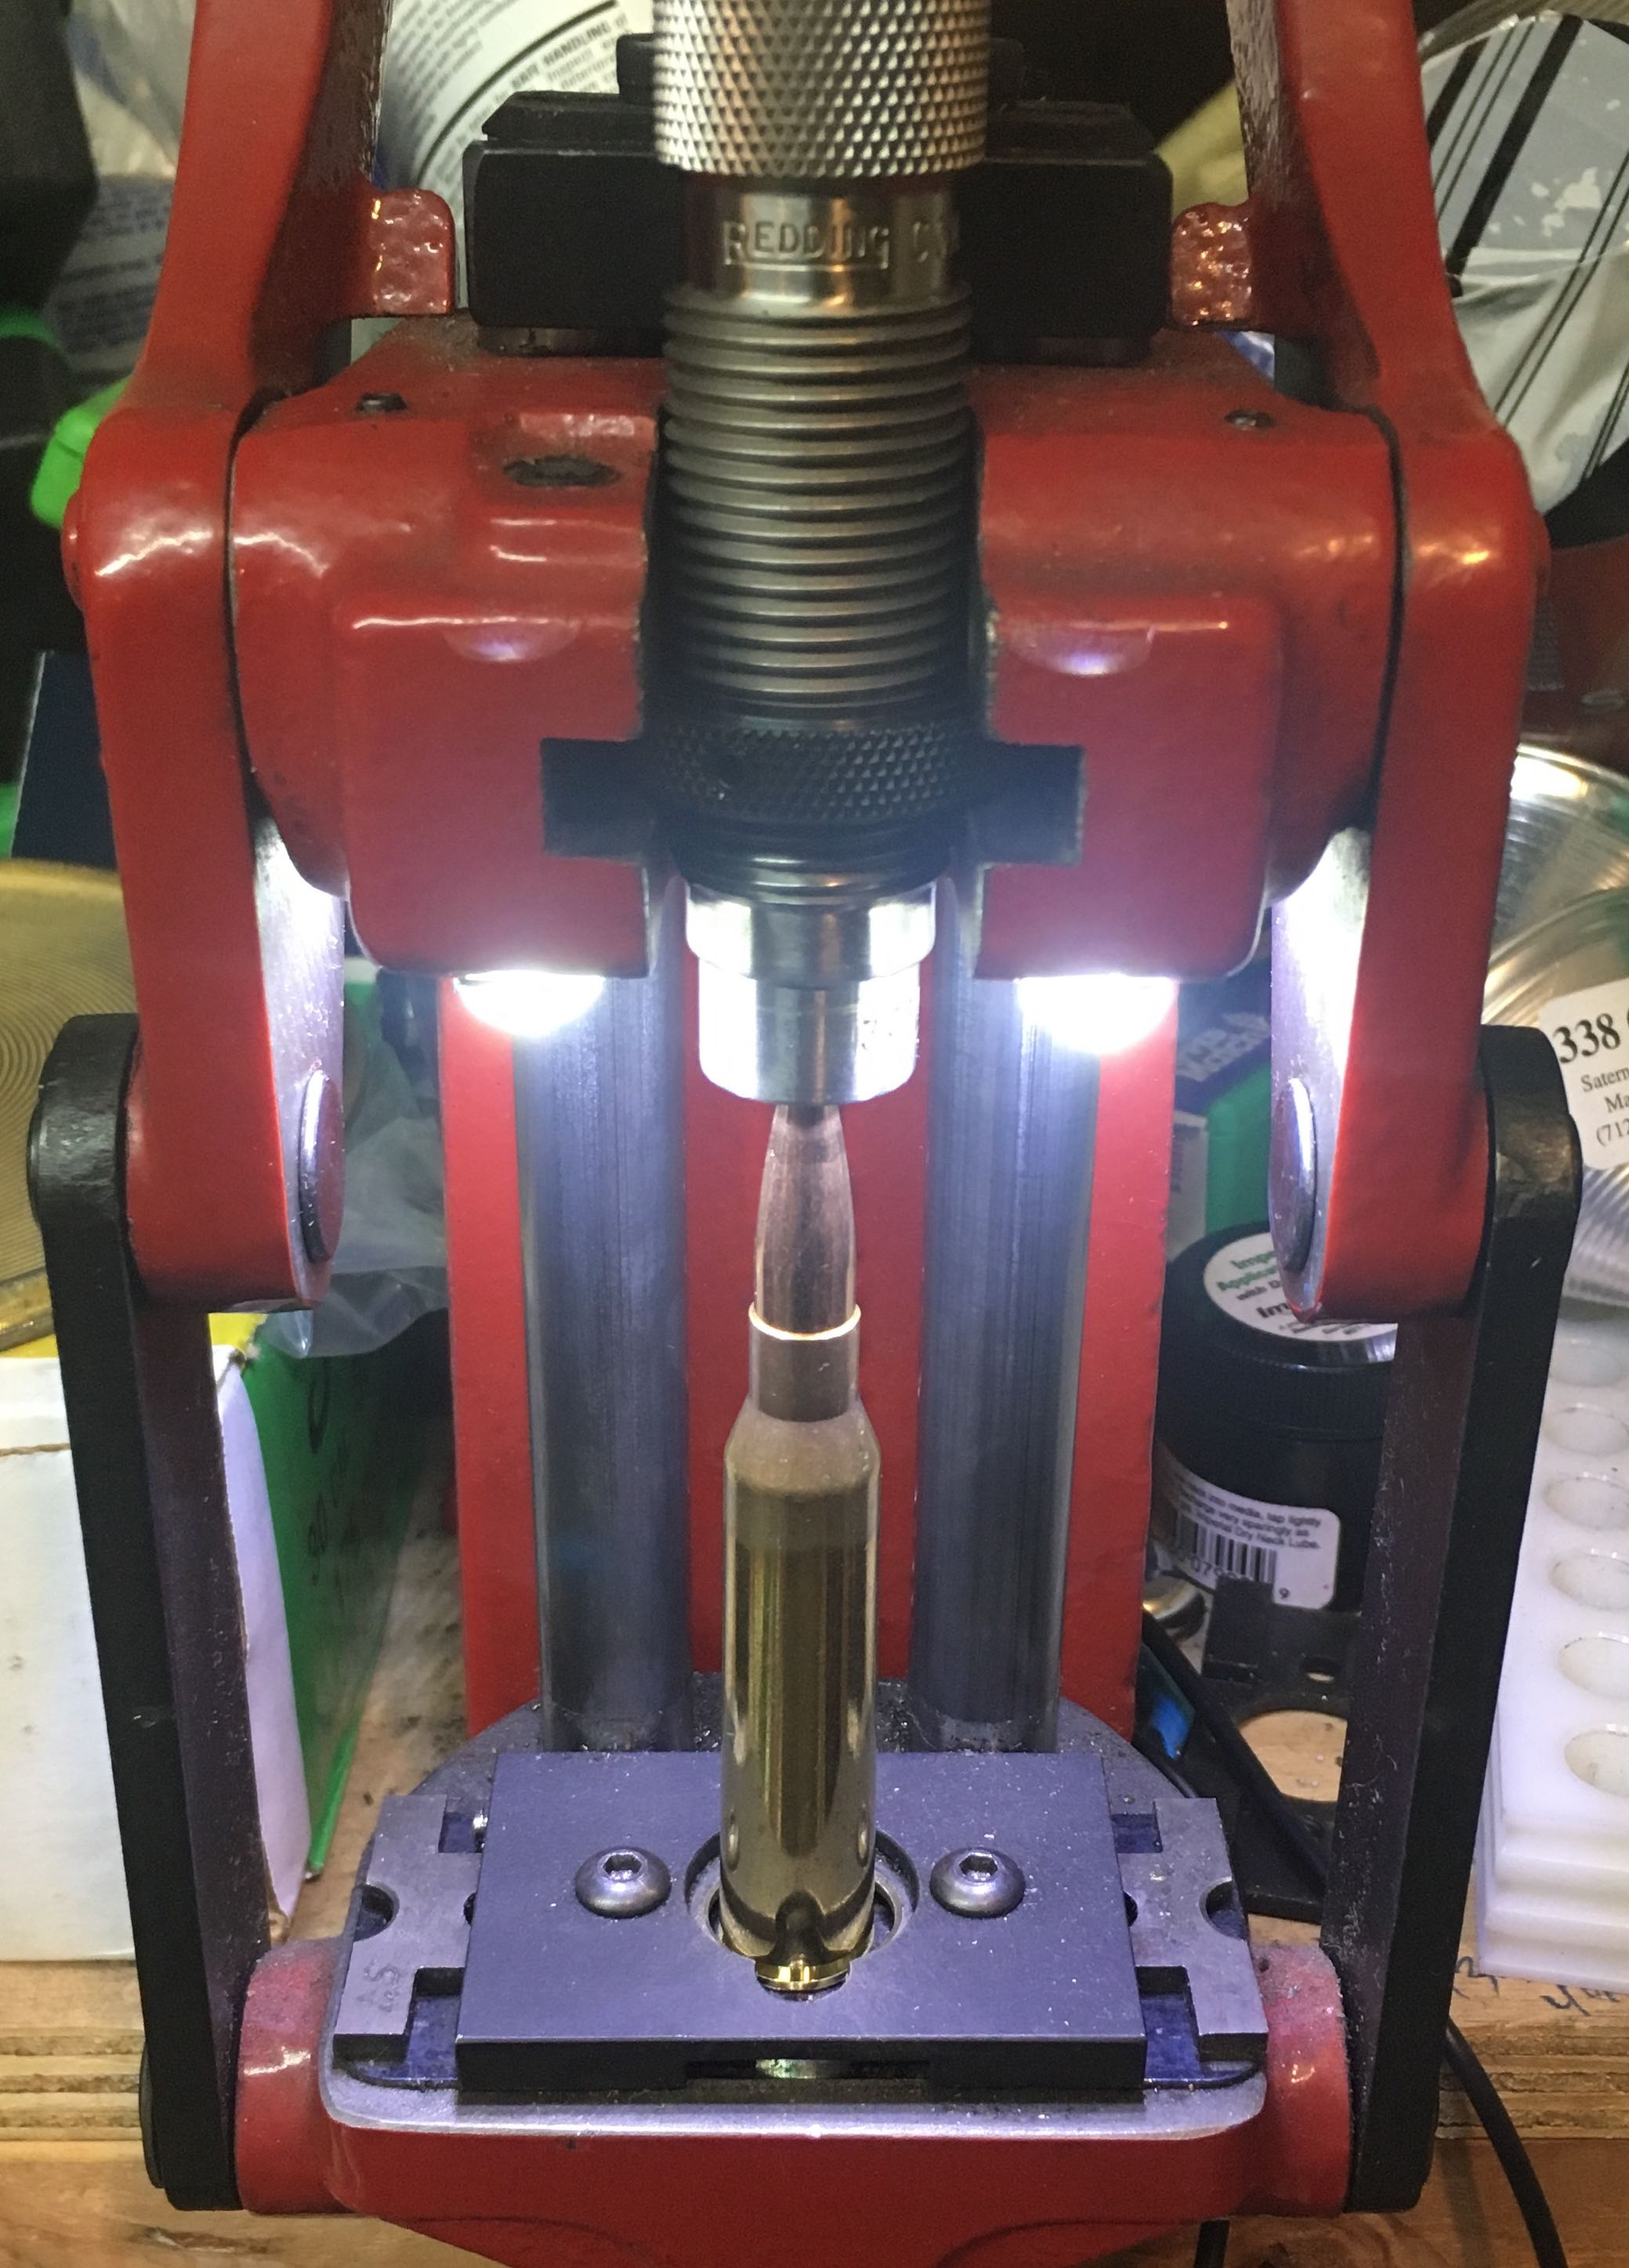 Forster CO-AX reloading press: REVIEW- Is it the best press